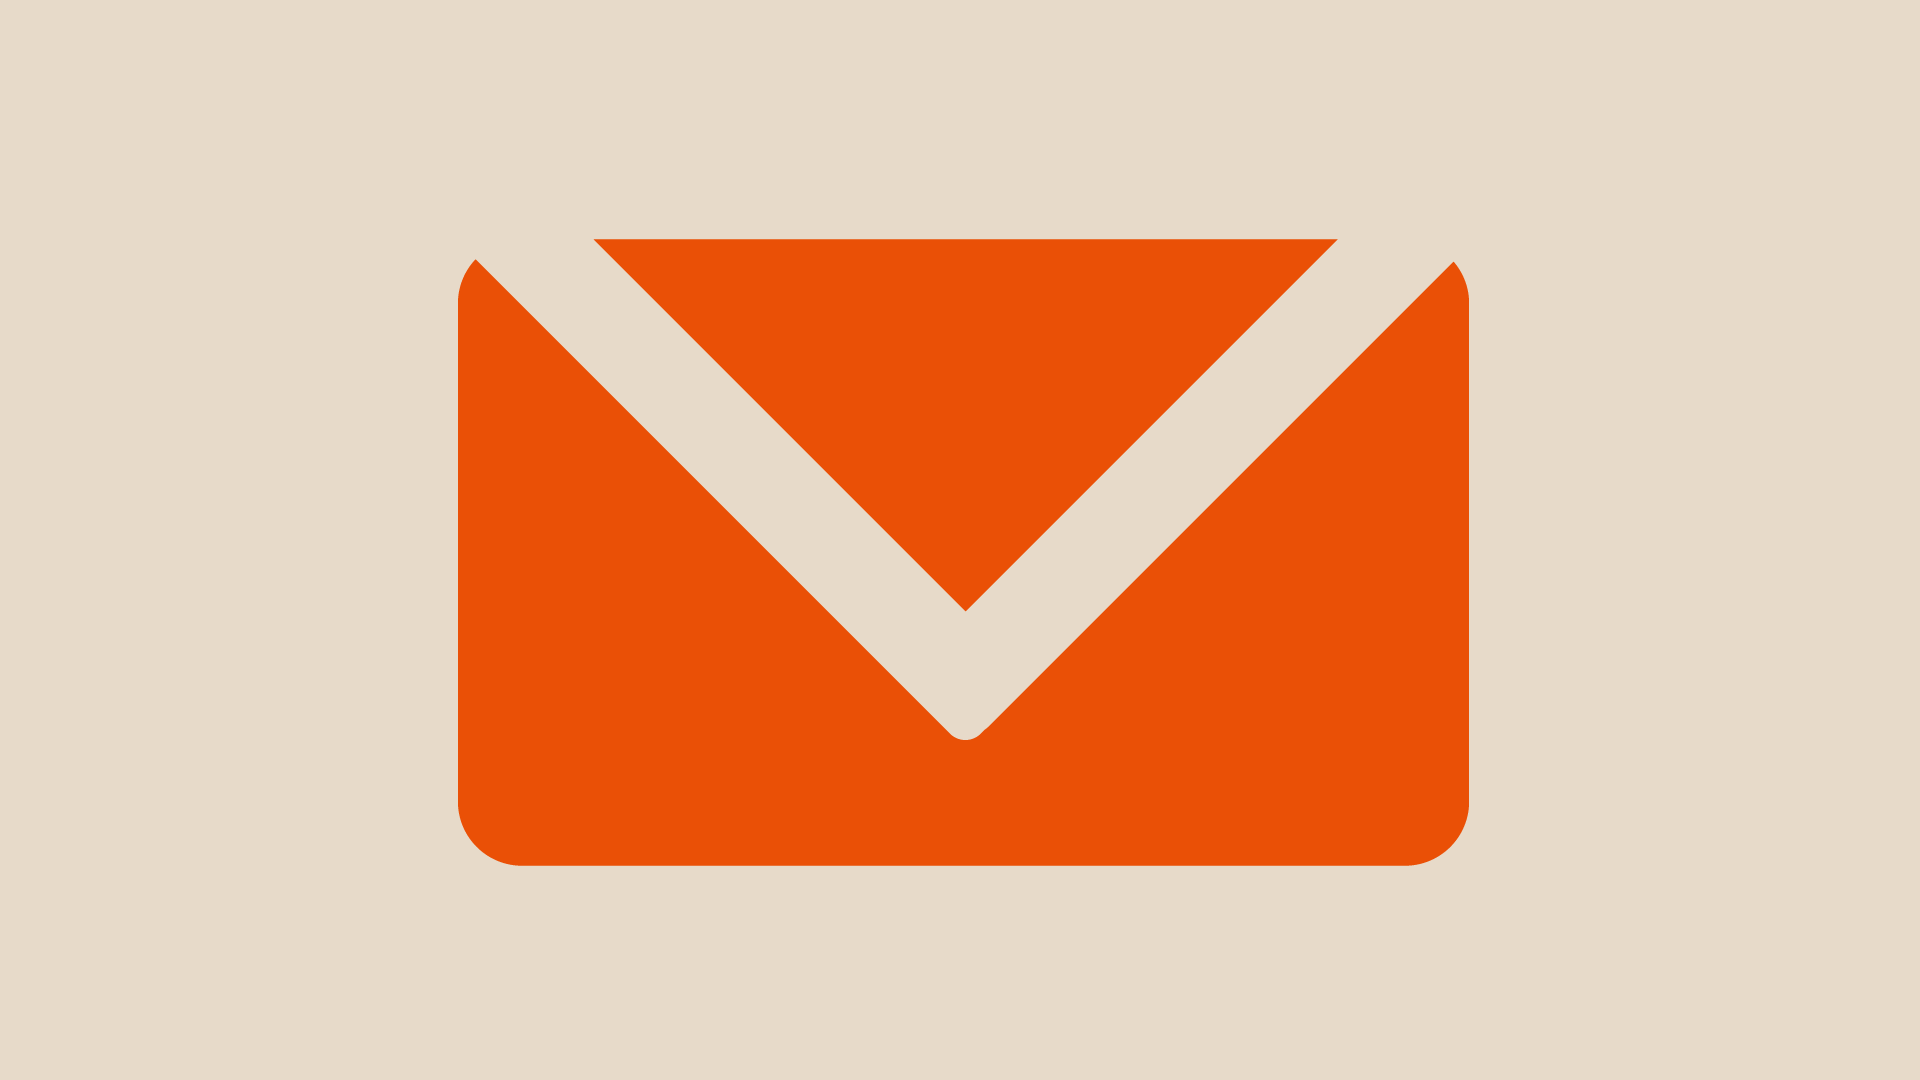 NEWSLETTER - Sign up for our newsletter to get informed about all of our latest updates, events, and opportunities!